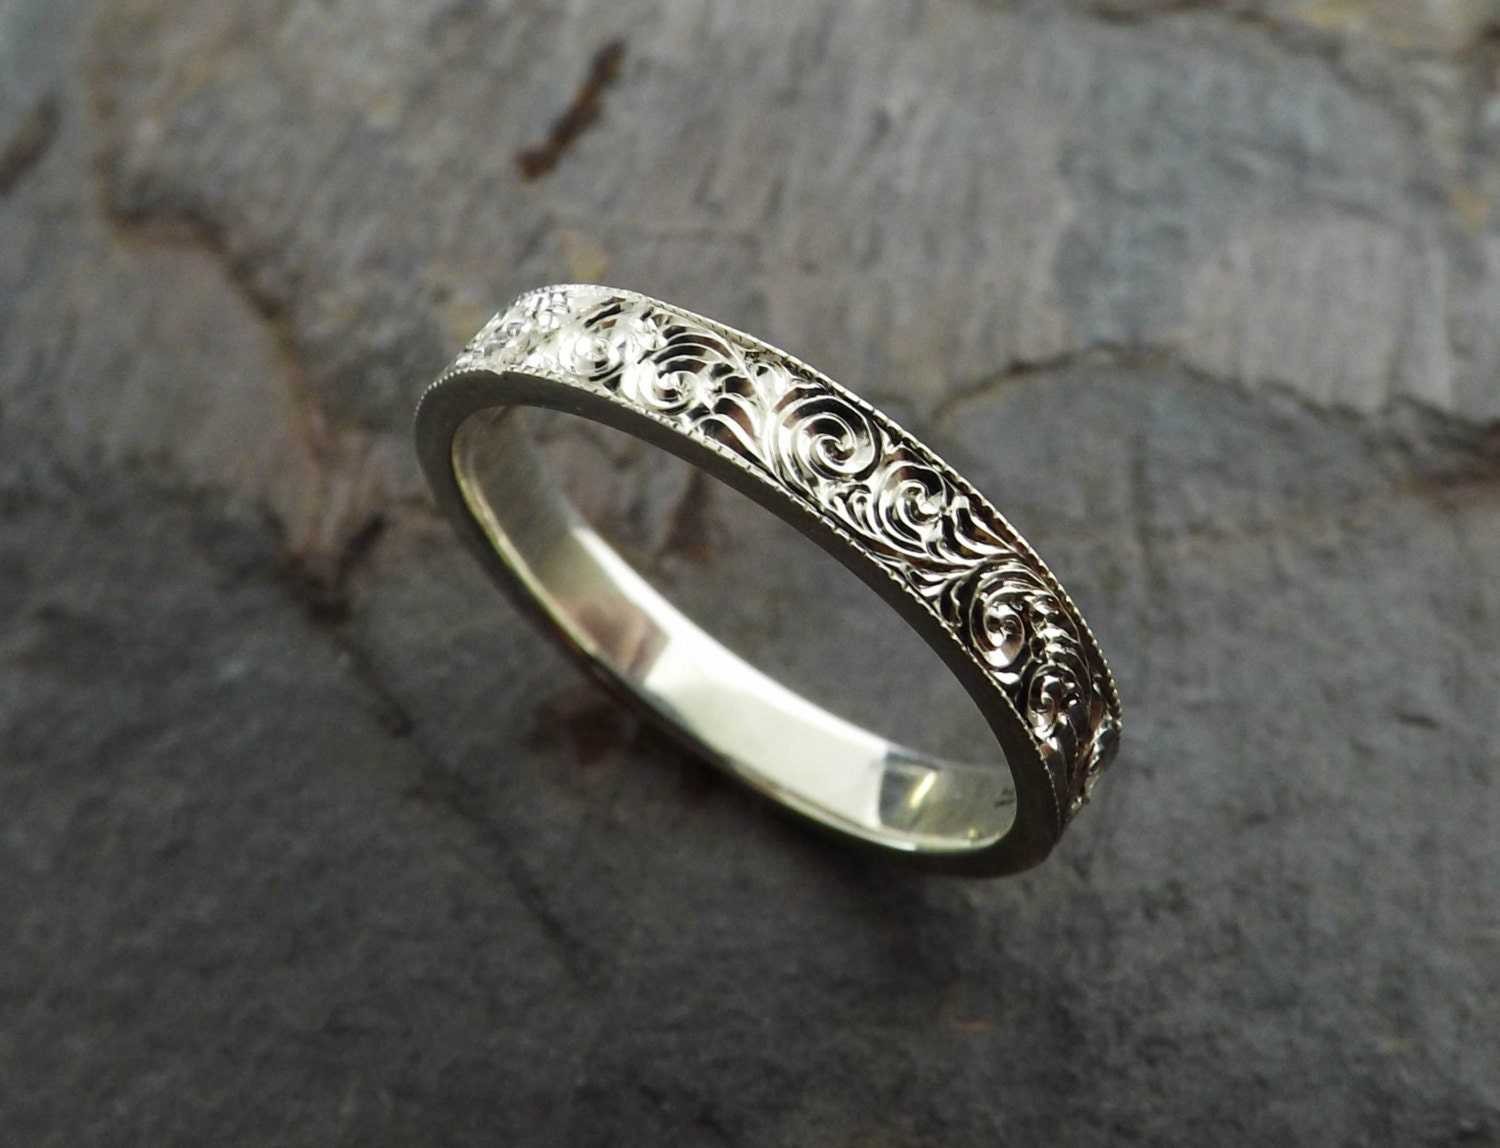 custom hand engraved sterling silver ring. Black Bedroom Furniture Sets. Home Design Ideas